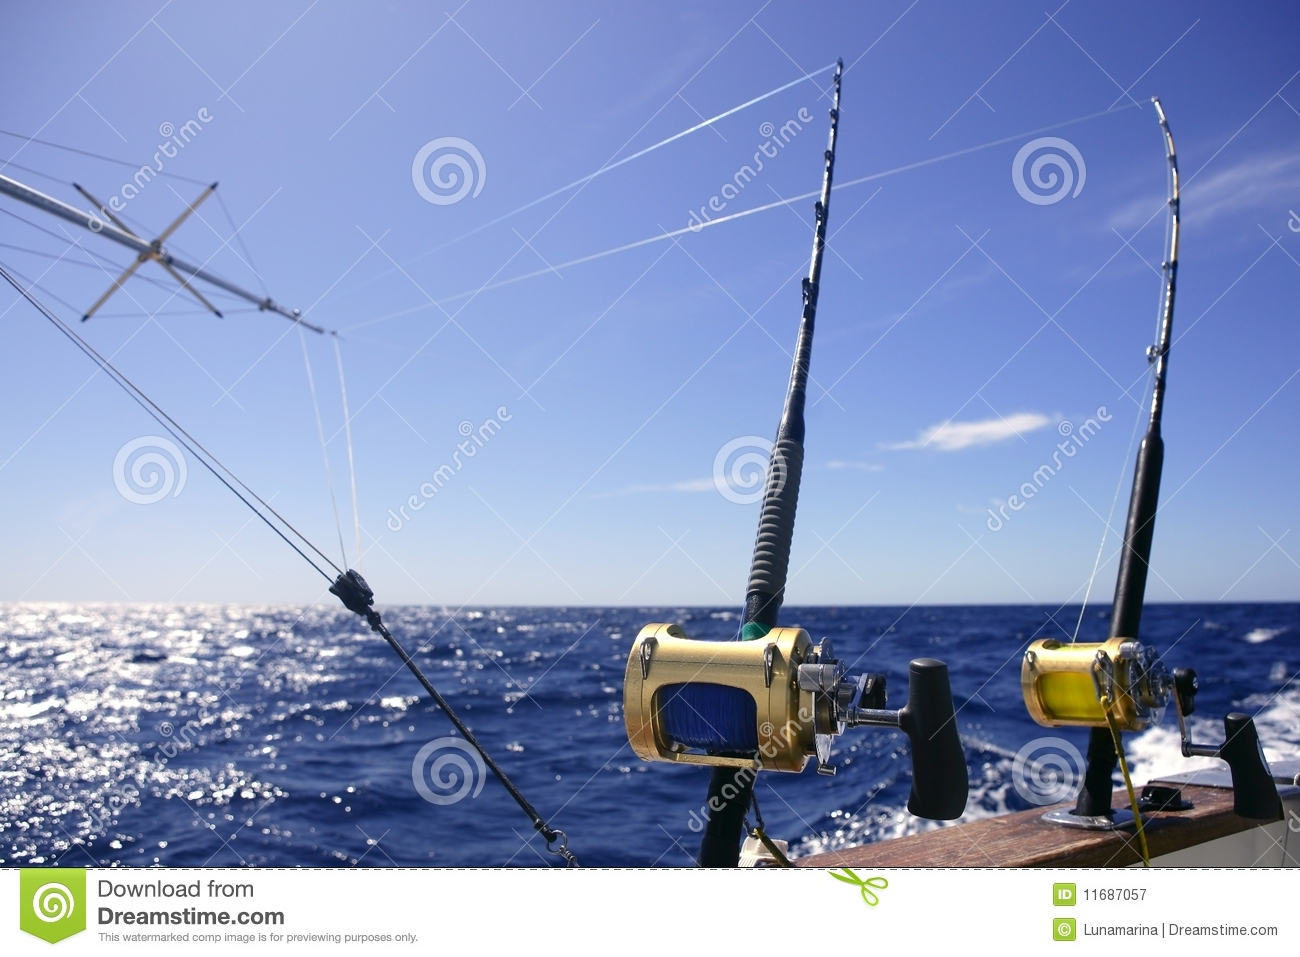 Big game boat fishing in deep sea stock image image for Boat fishing games